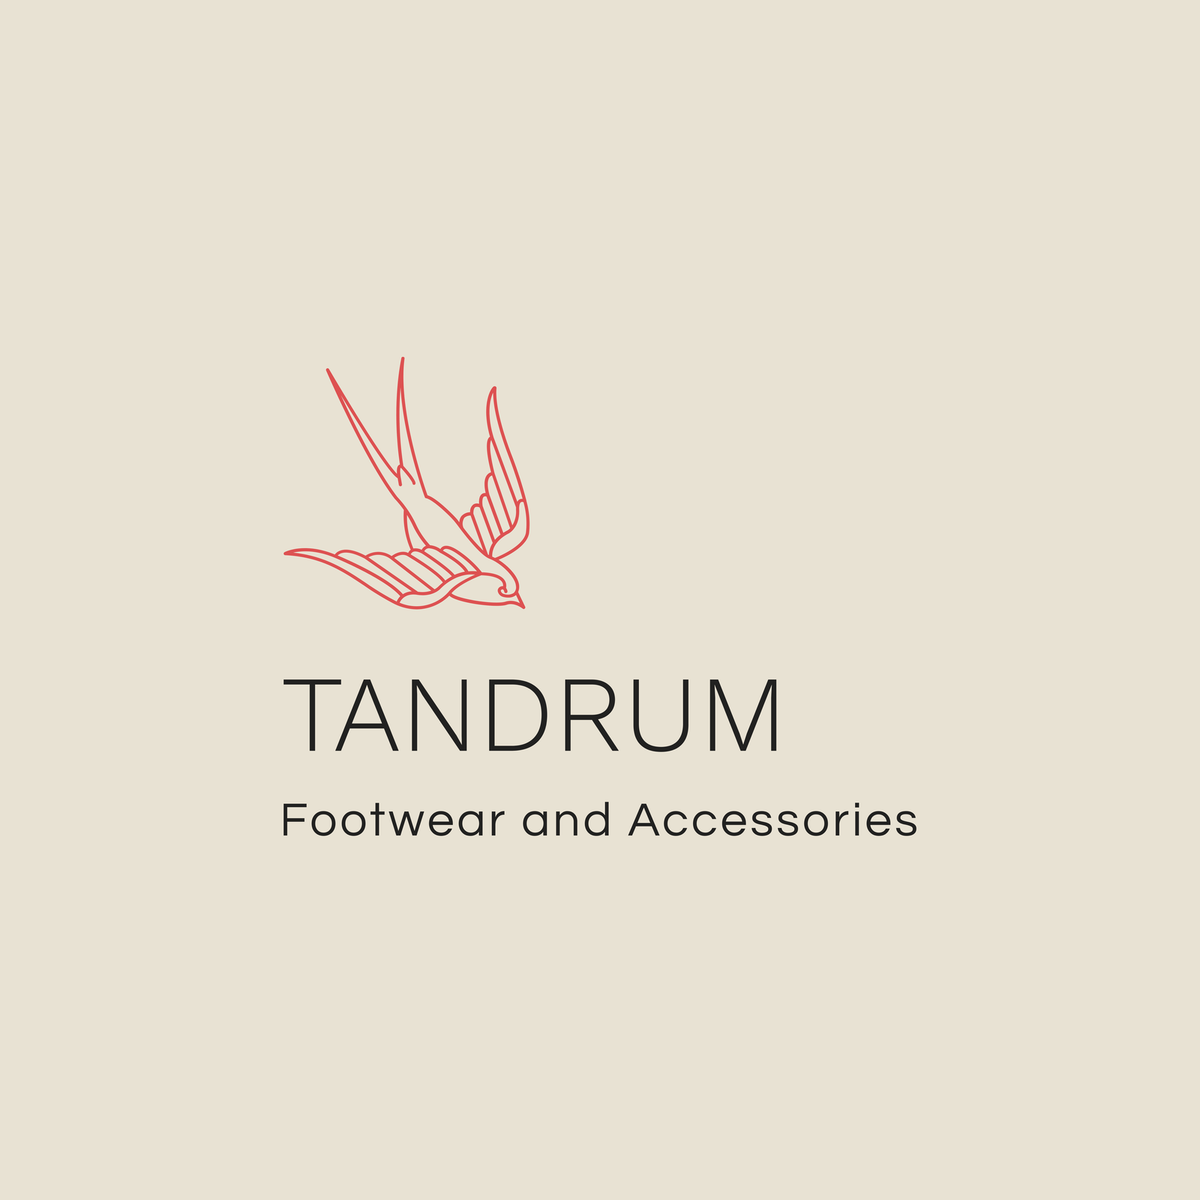 TANDRUM Footwear and Accessories